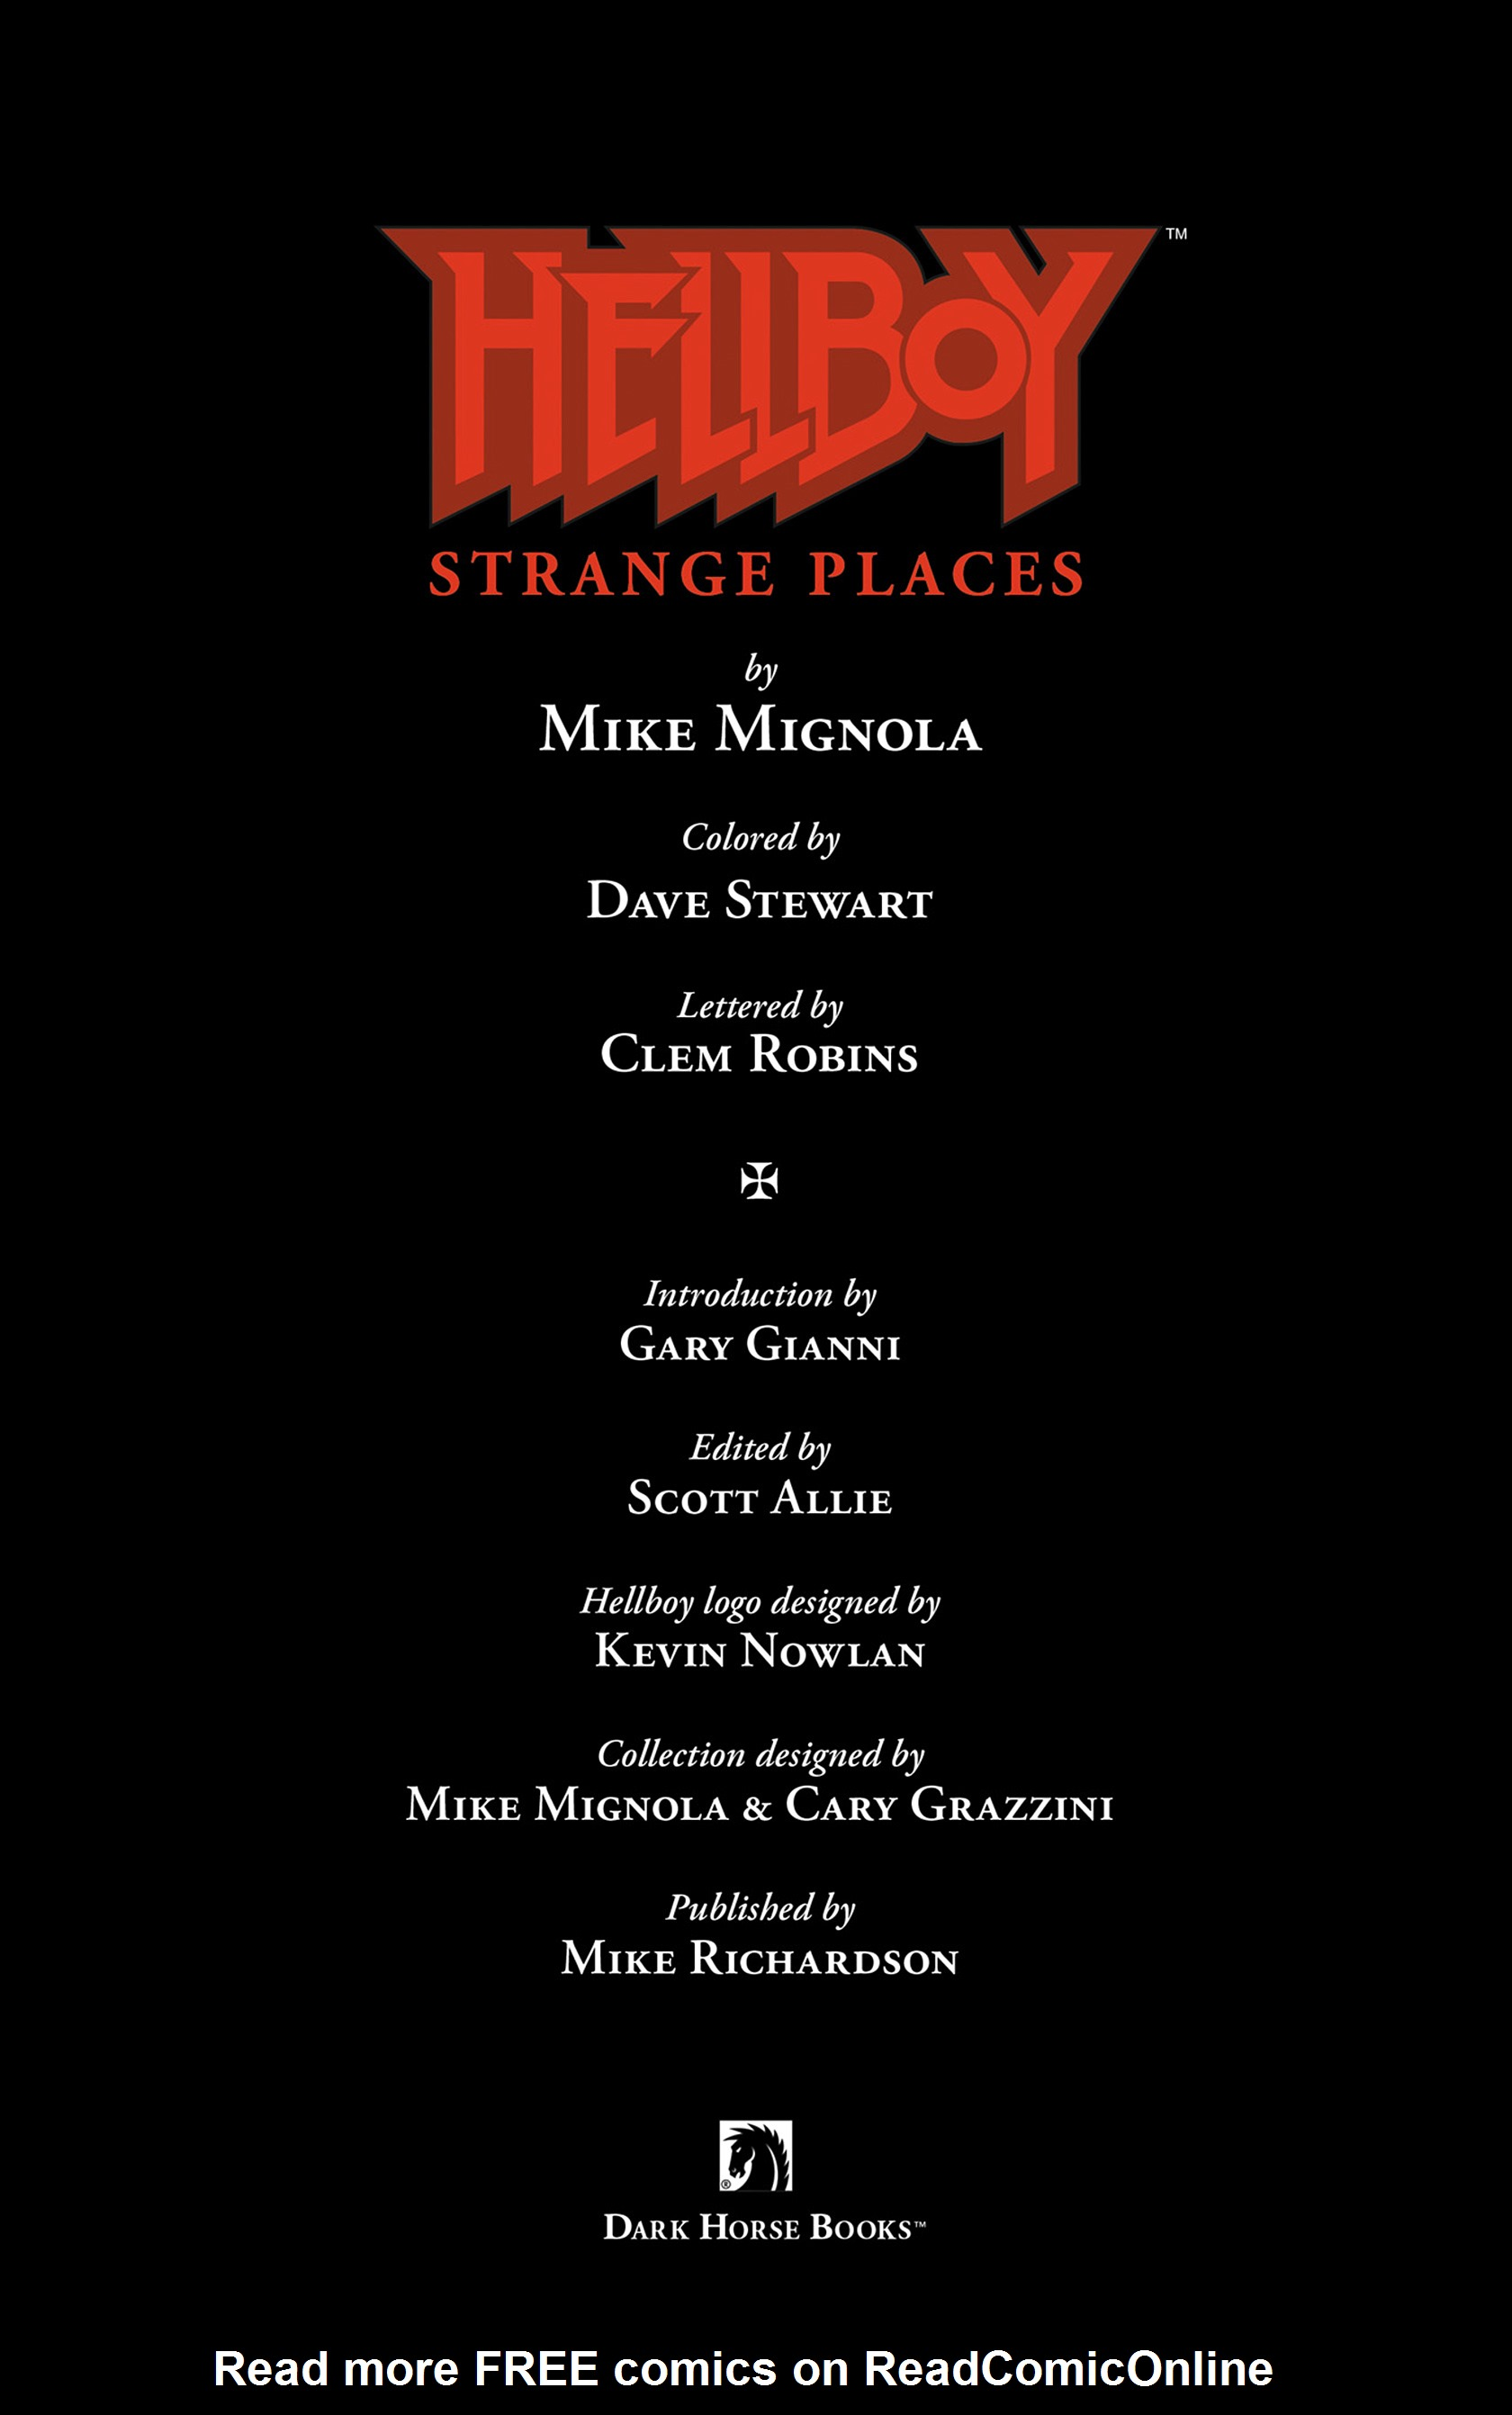 Read online Hellboy: Strange Places comic -  Issue # TPB - 4